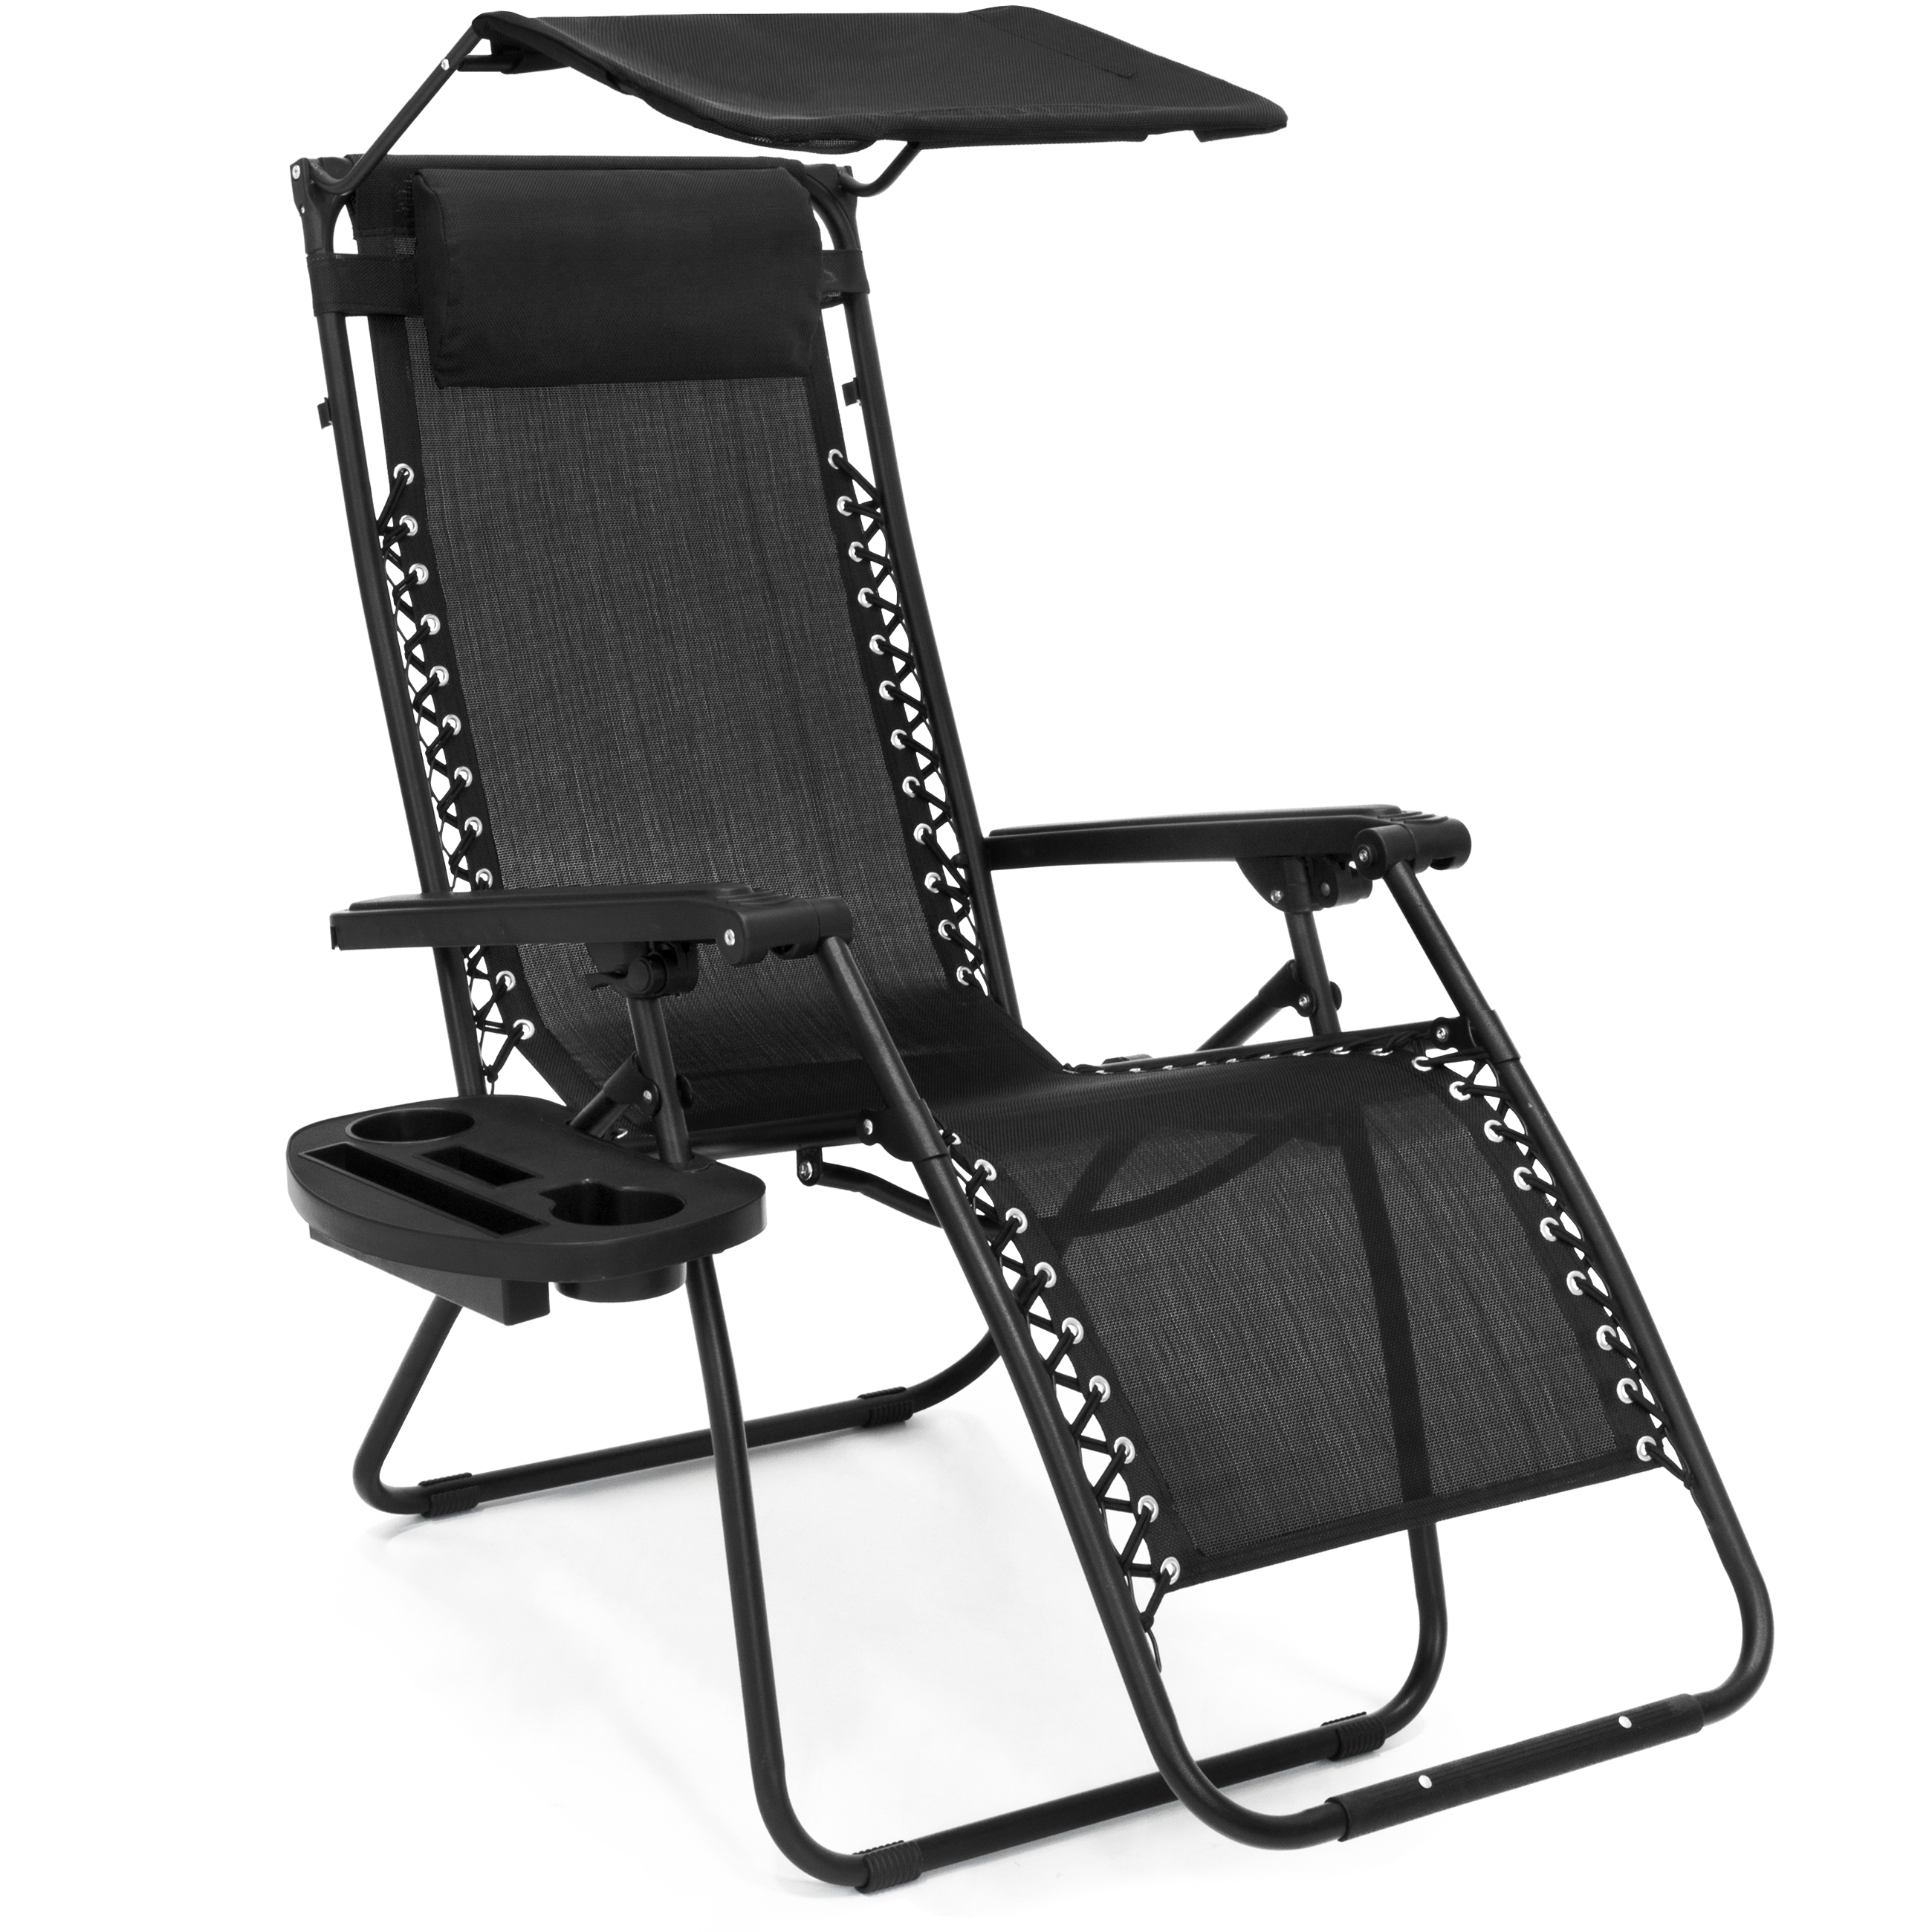 Beach Chair With Canopy And Cup Holder Folding Zero Gravity Recliner Lounge Chair W Shade And Cup